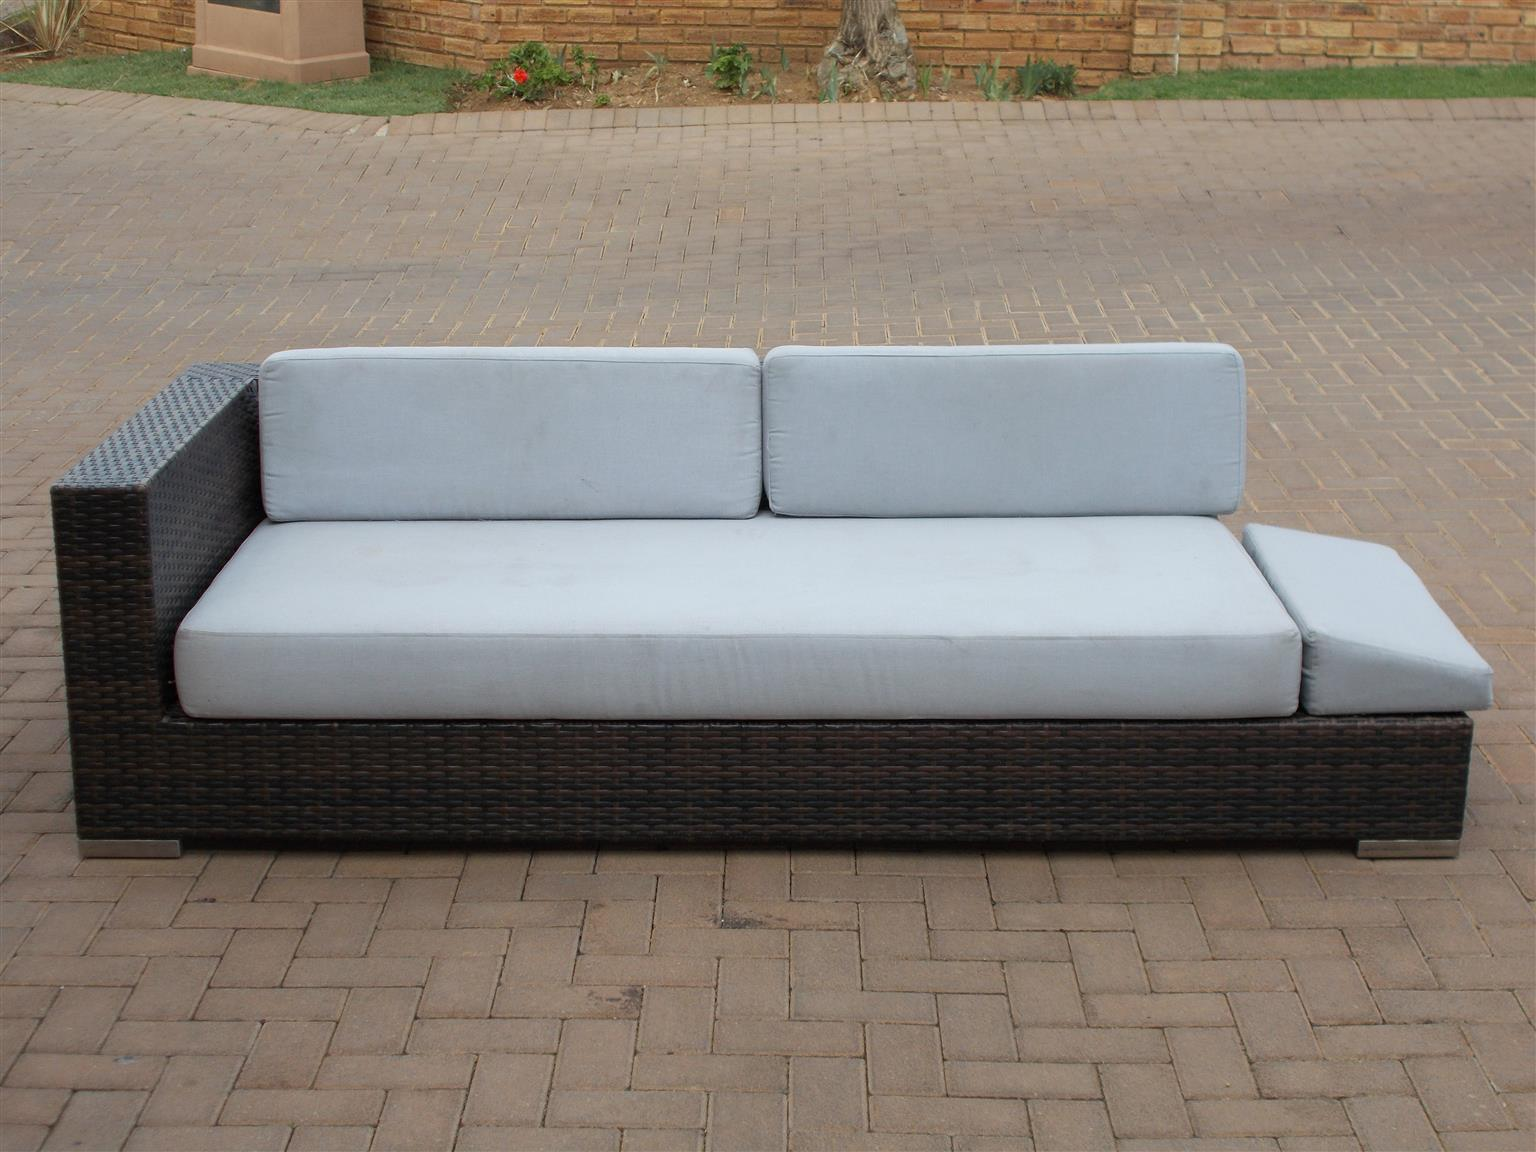 Garden or Patio Couch R1000